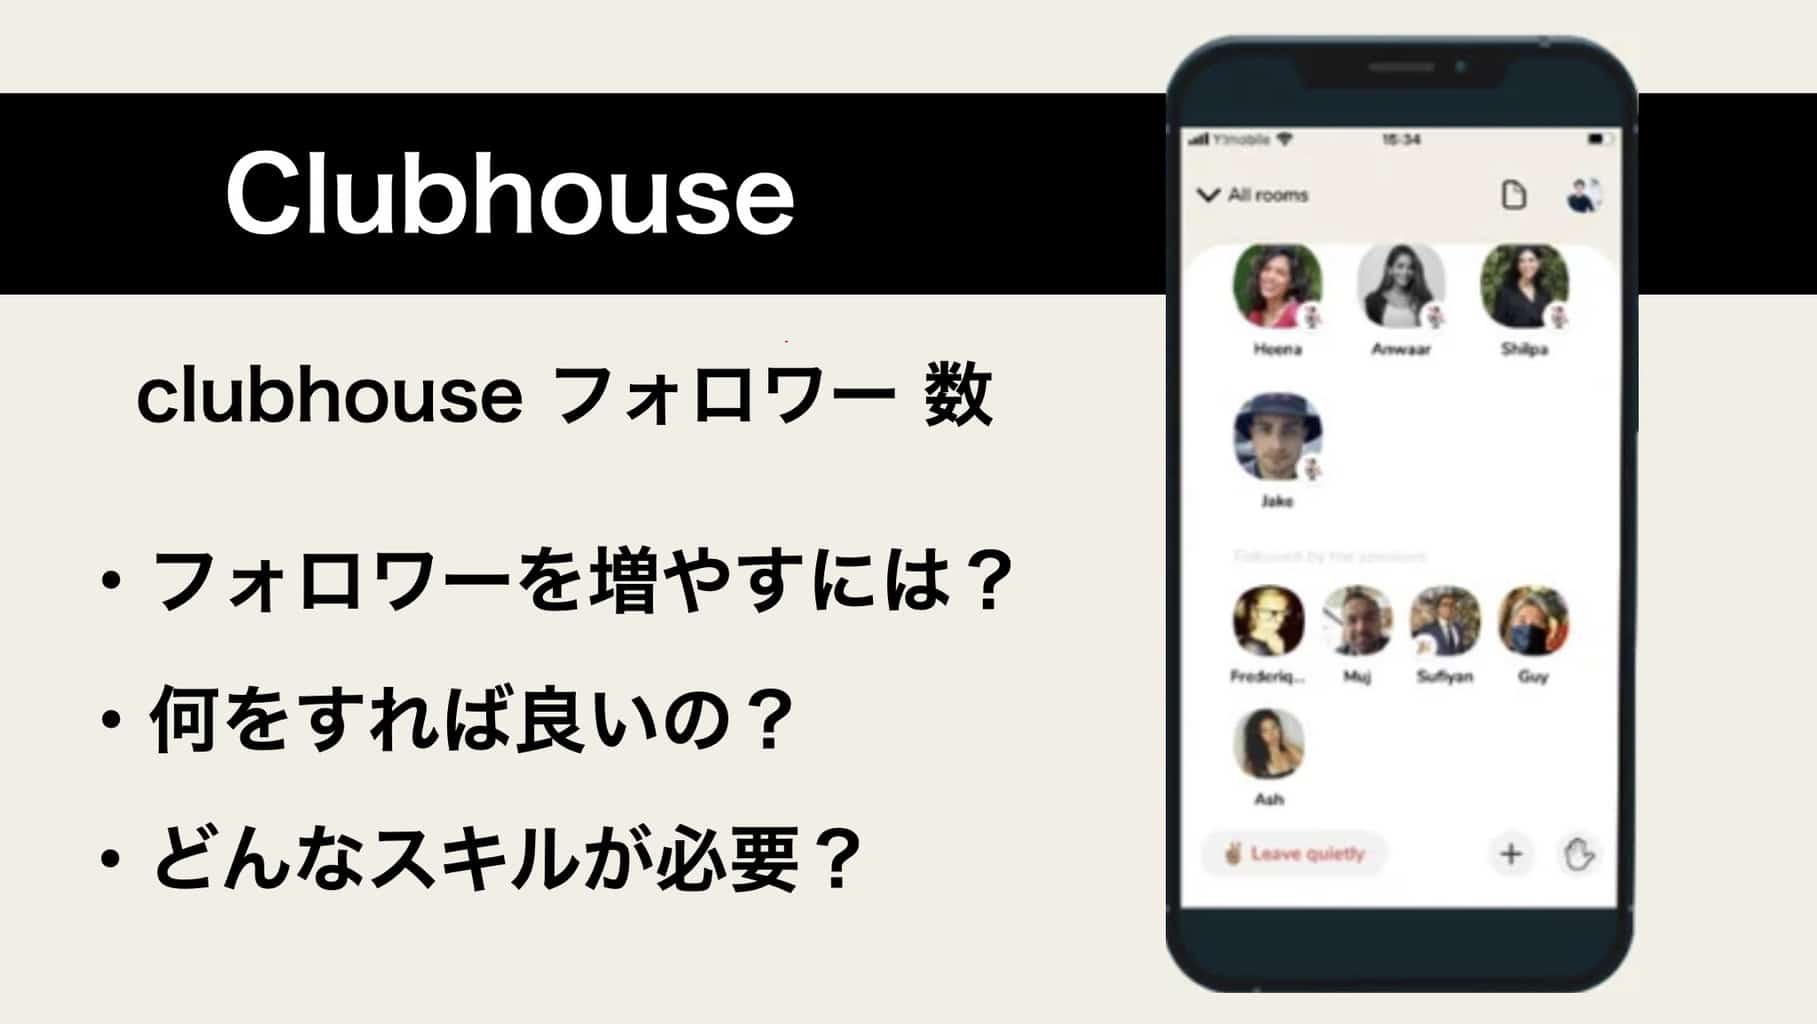 clubhouse フォロワー 数